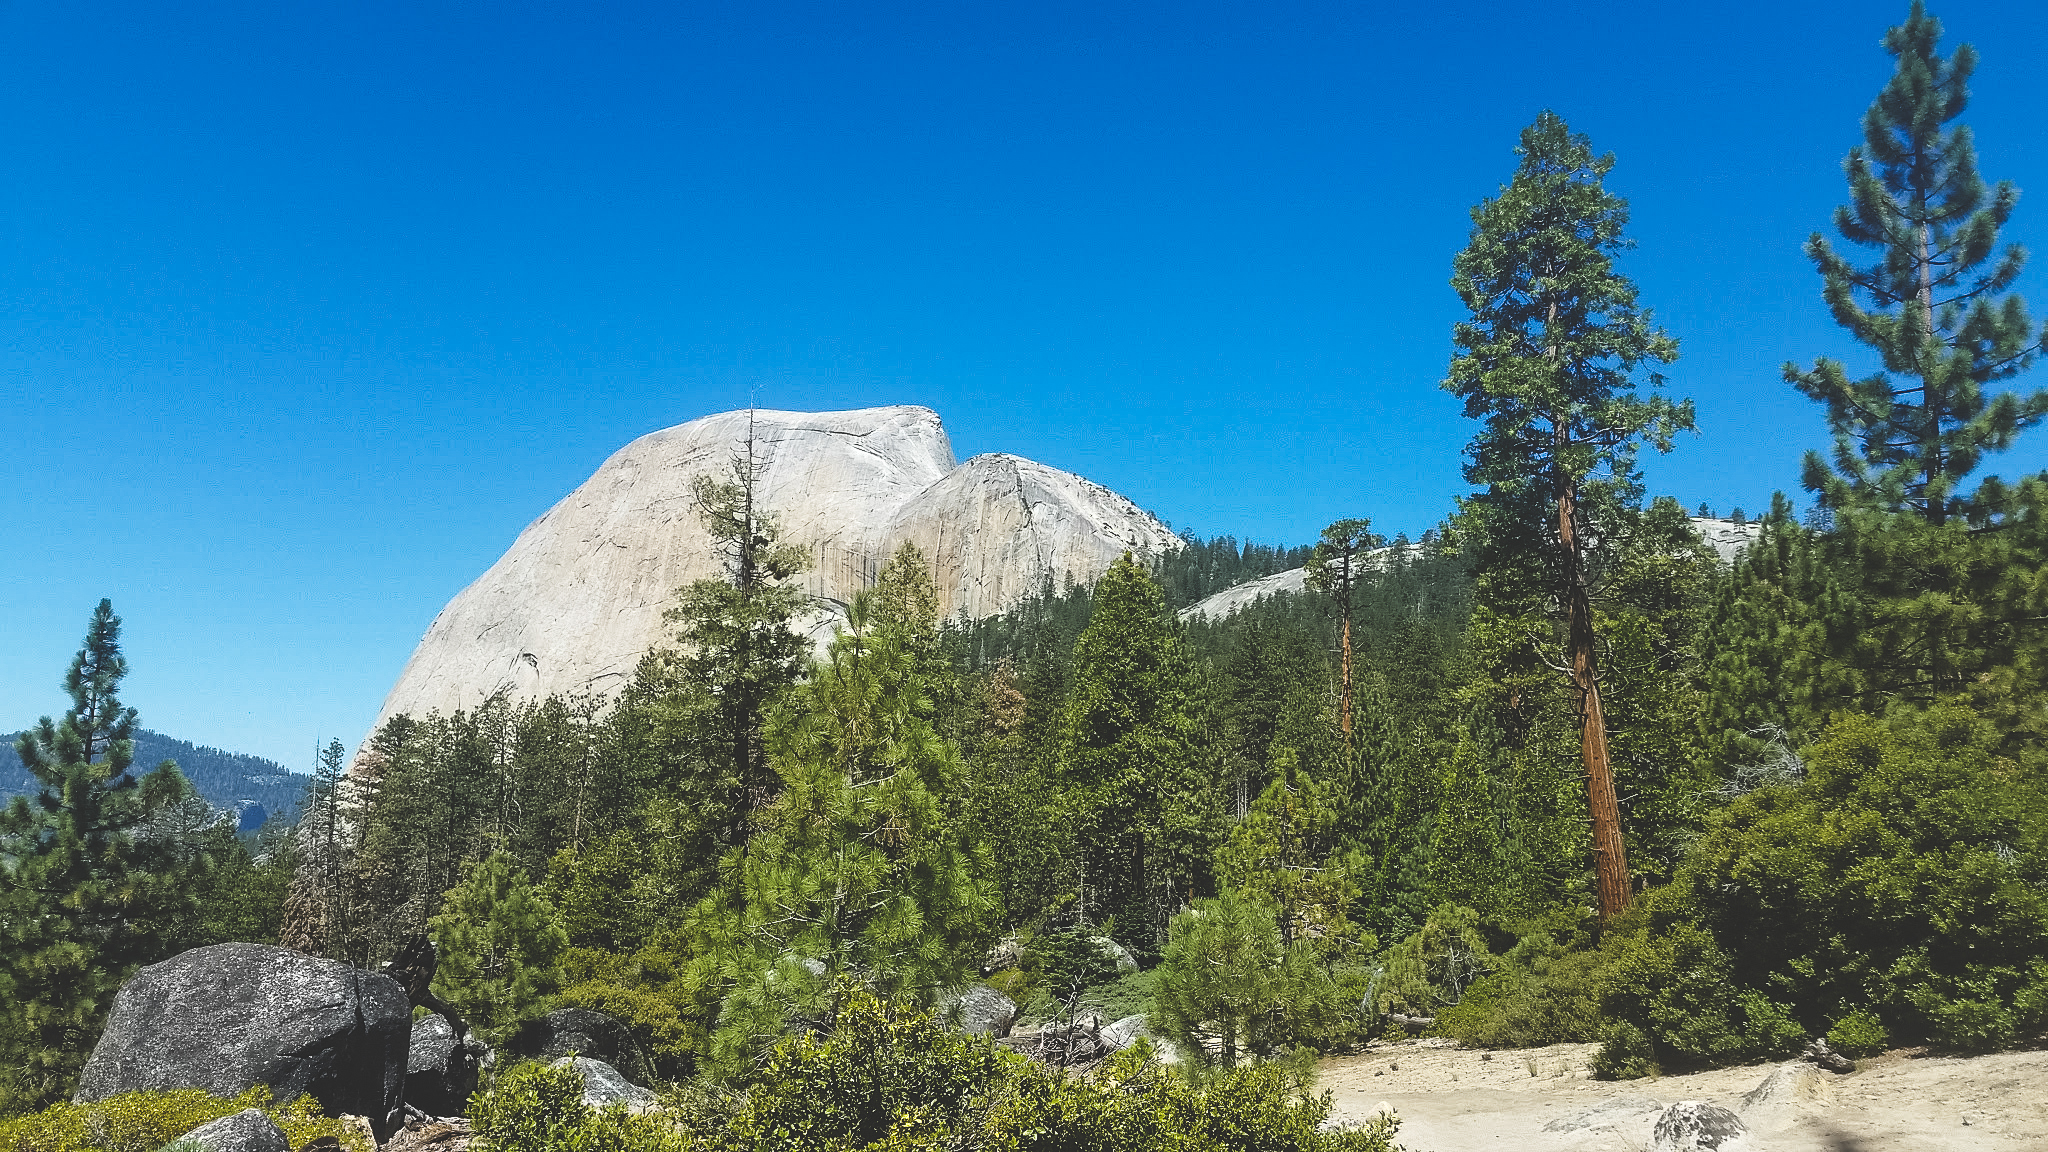 Getting farther from Half Dome